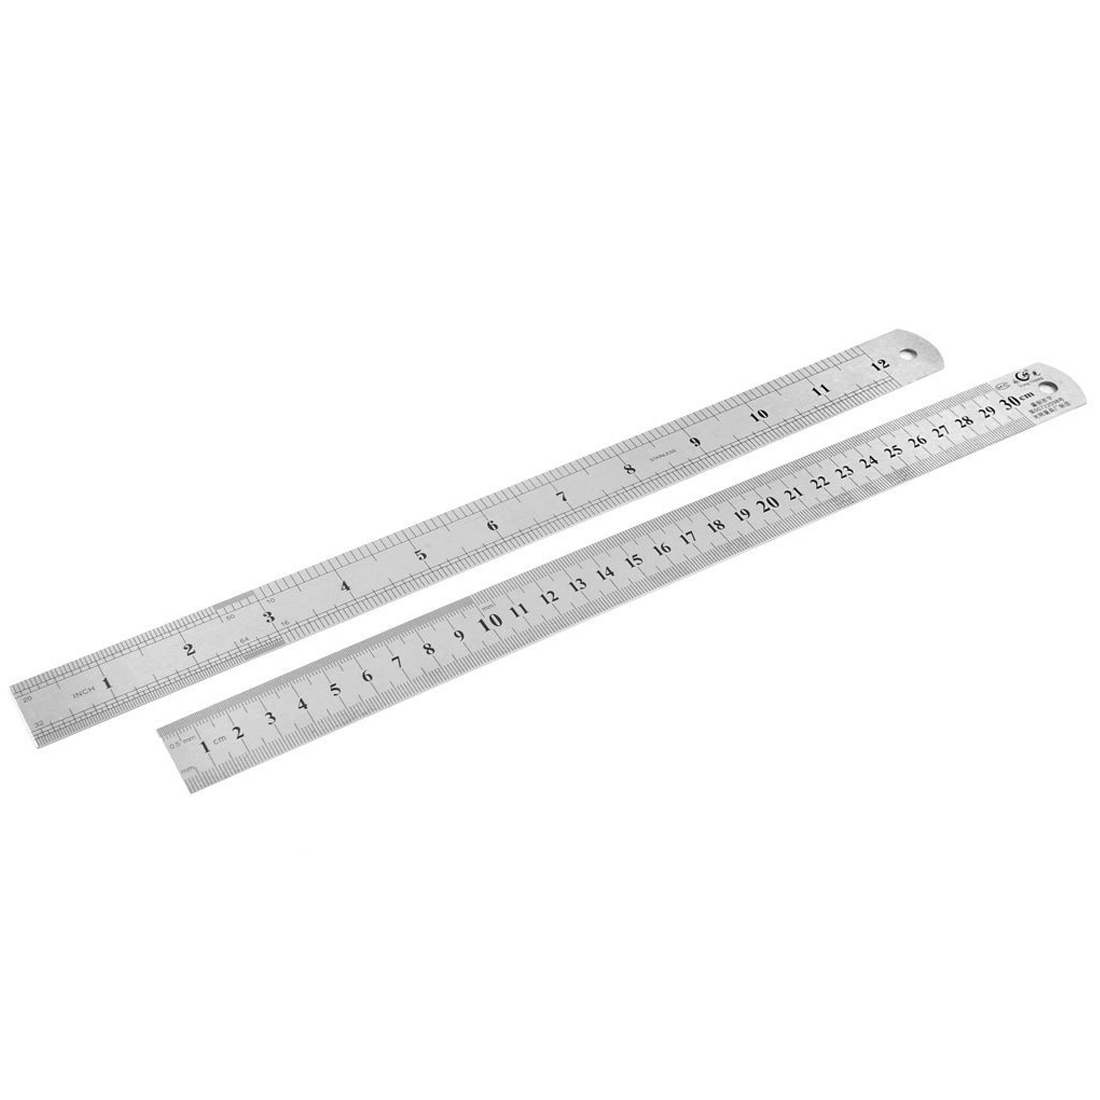 Wholesale 10pcs of 2pcs Dual Side Stainless Steel Measuring Straight Ruler 300mm 12 Inch double side scale stainless steel straight ruler measuring tool 50cm